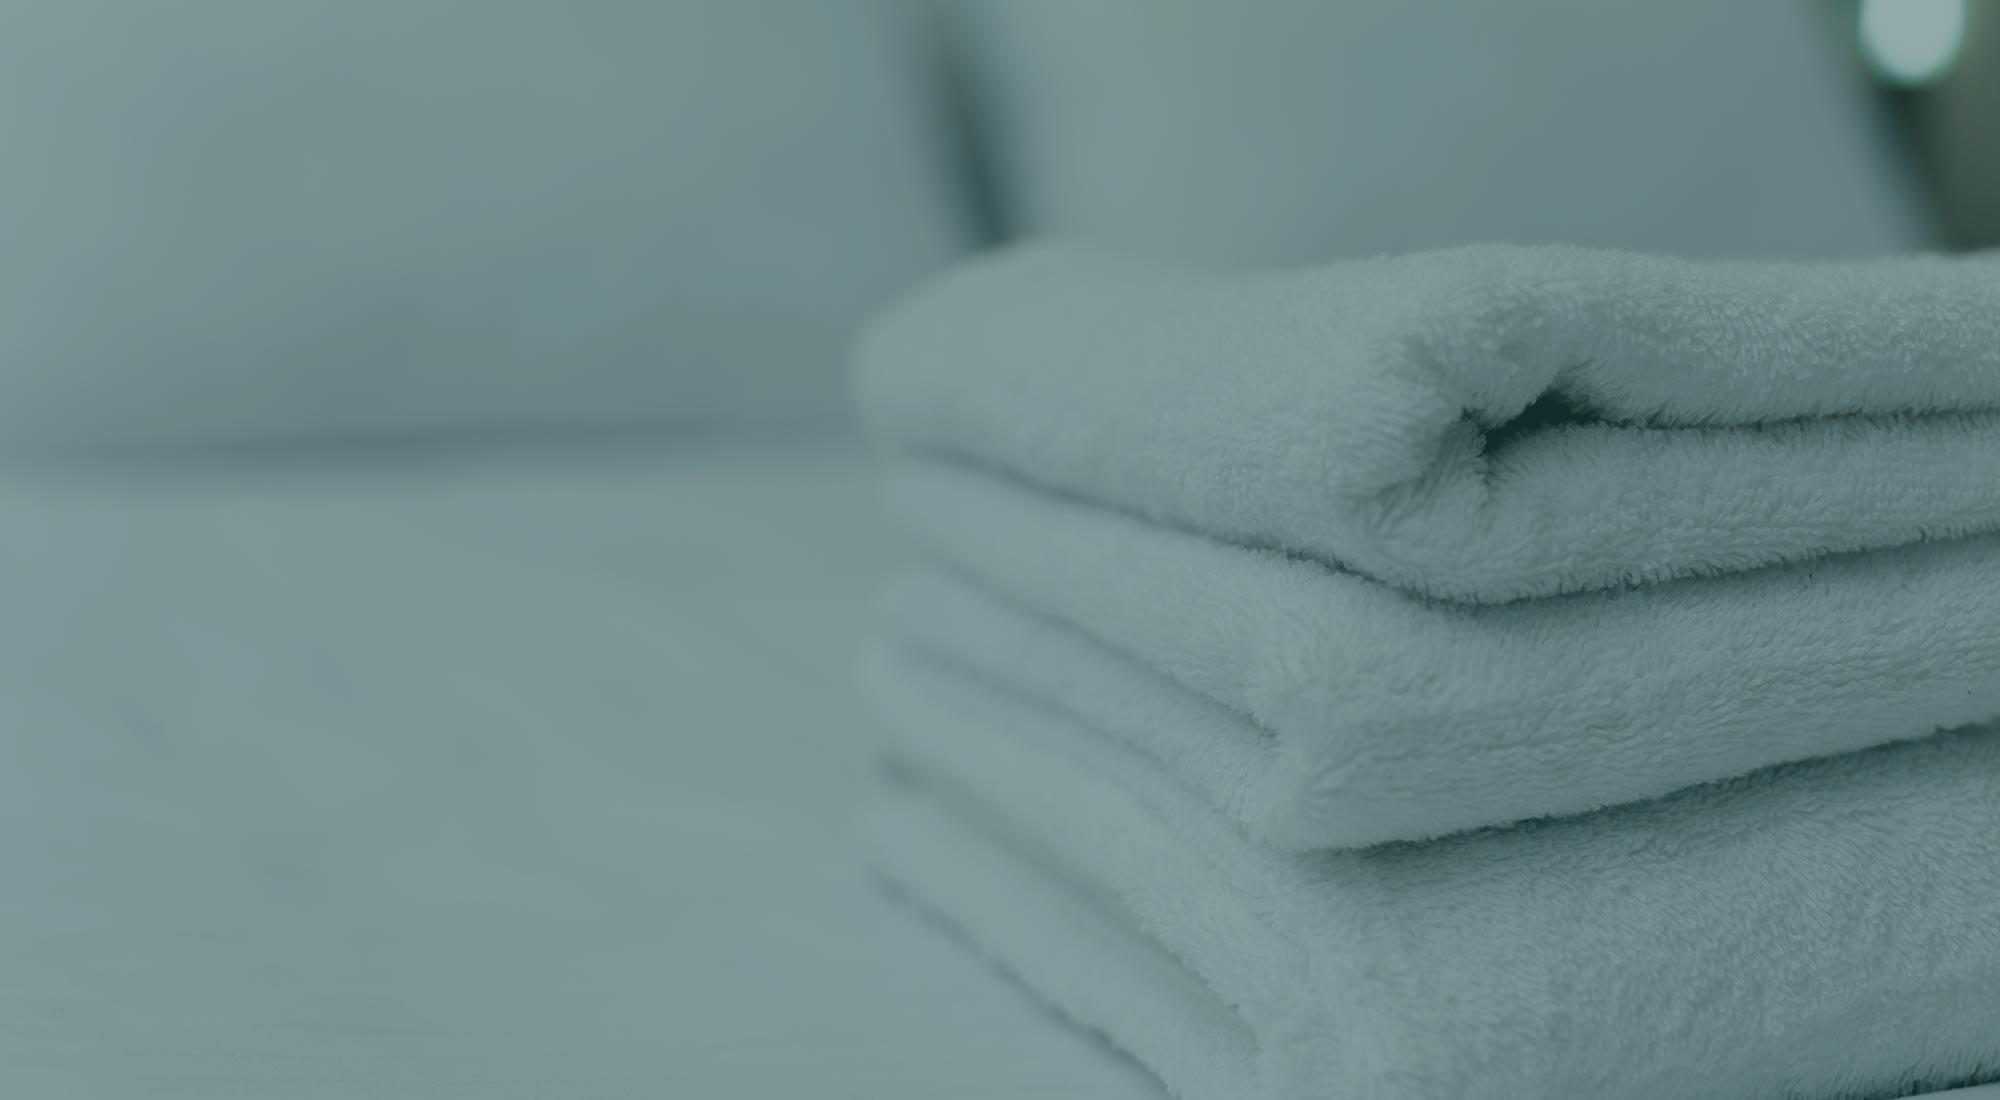 Why is design important for commodities such as white towels?